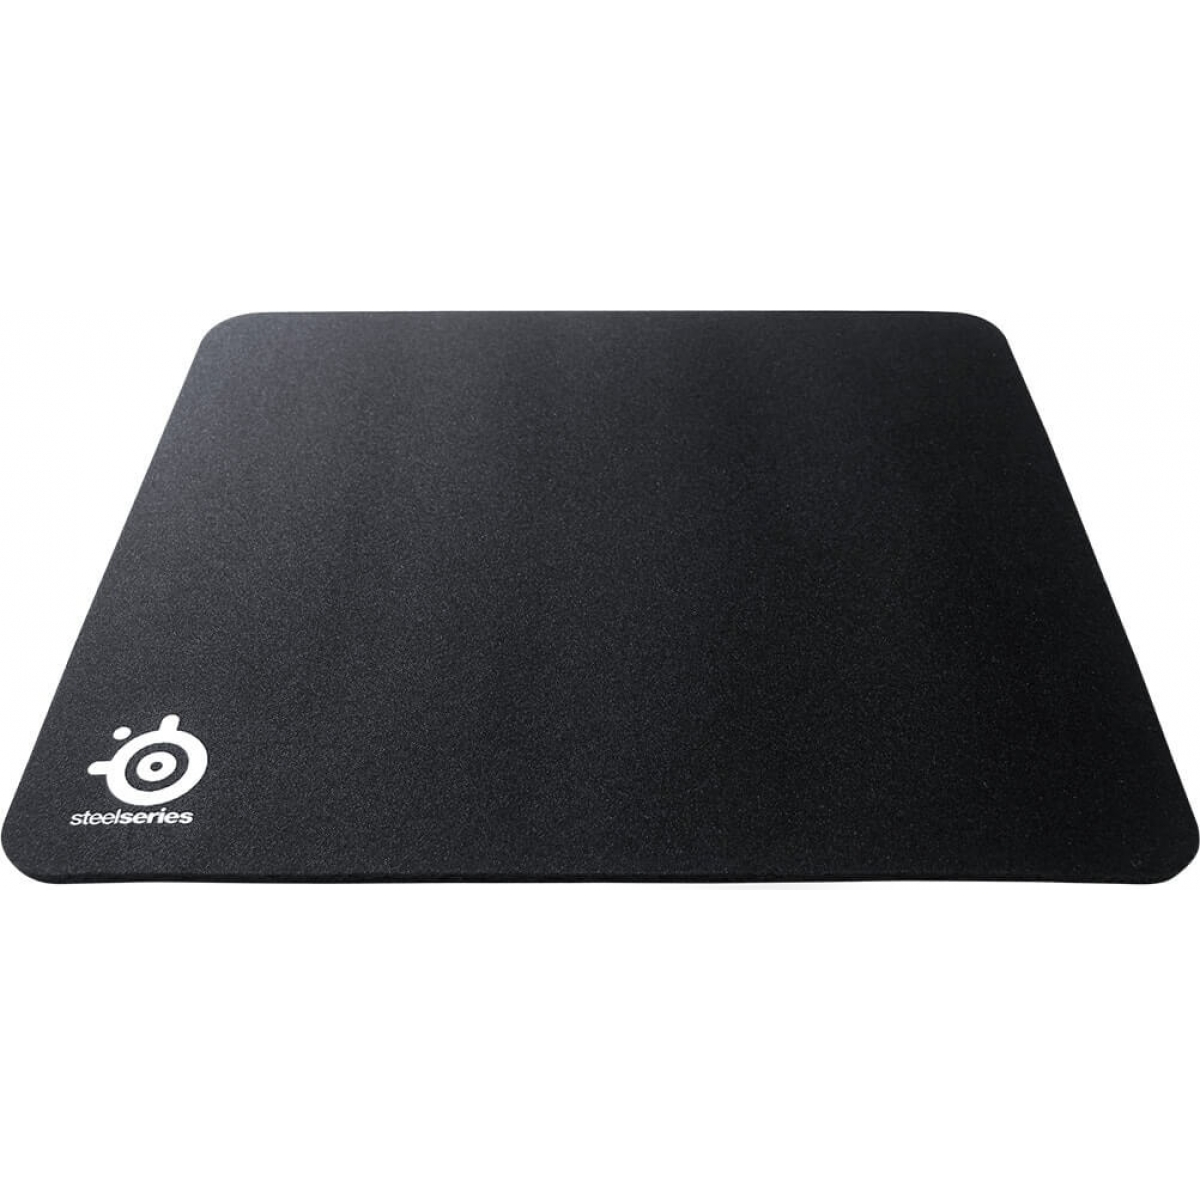 Mouse Pad Gamer Steelseries QcK mass Gaming Preto 63010